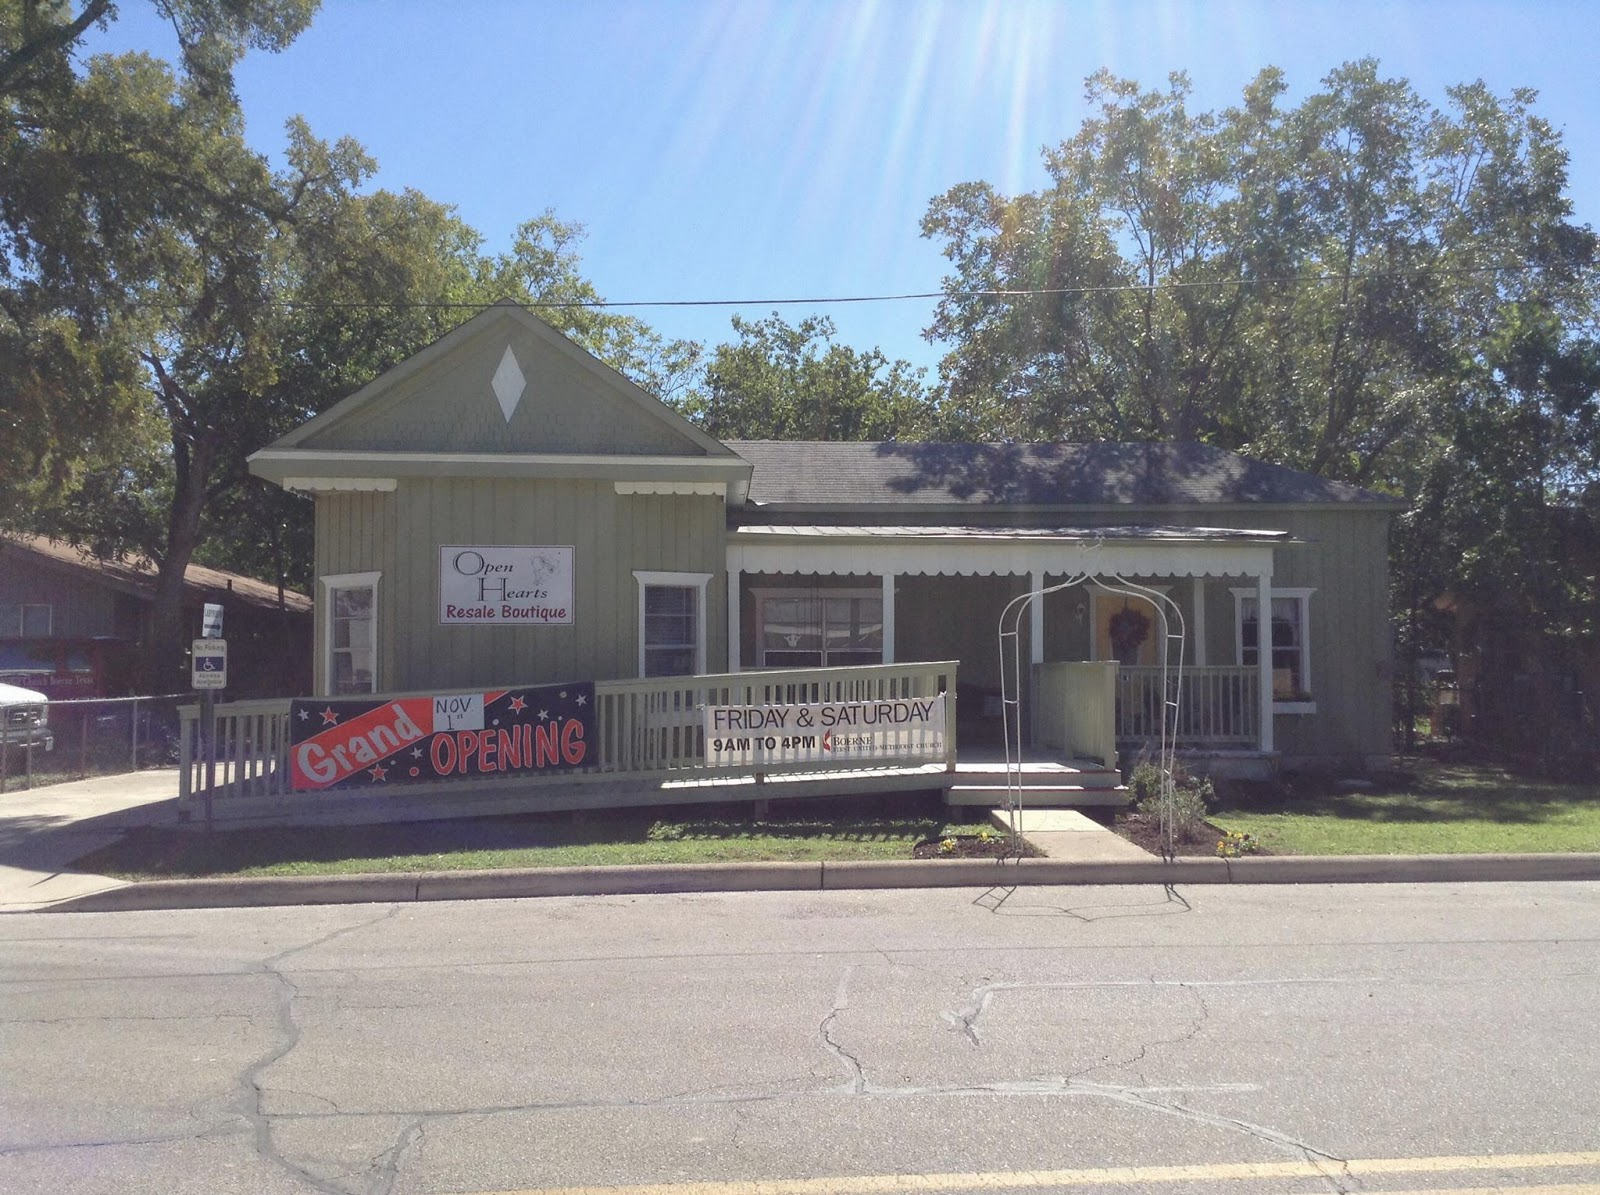 Resale Furniture San Antonio Thrifting For a Cause: Boerne